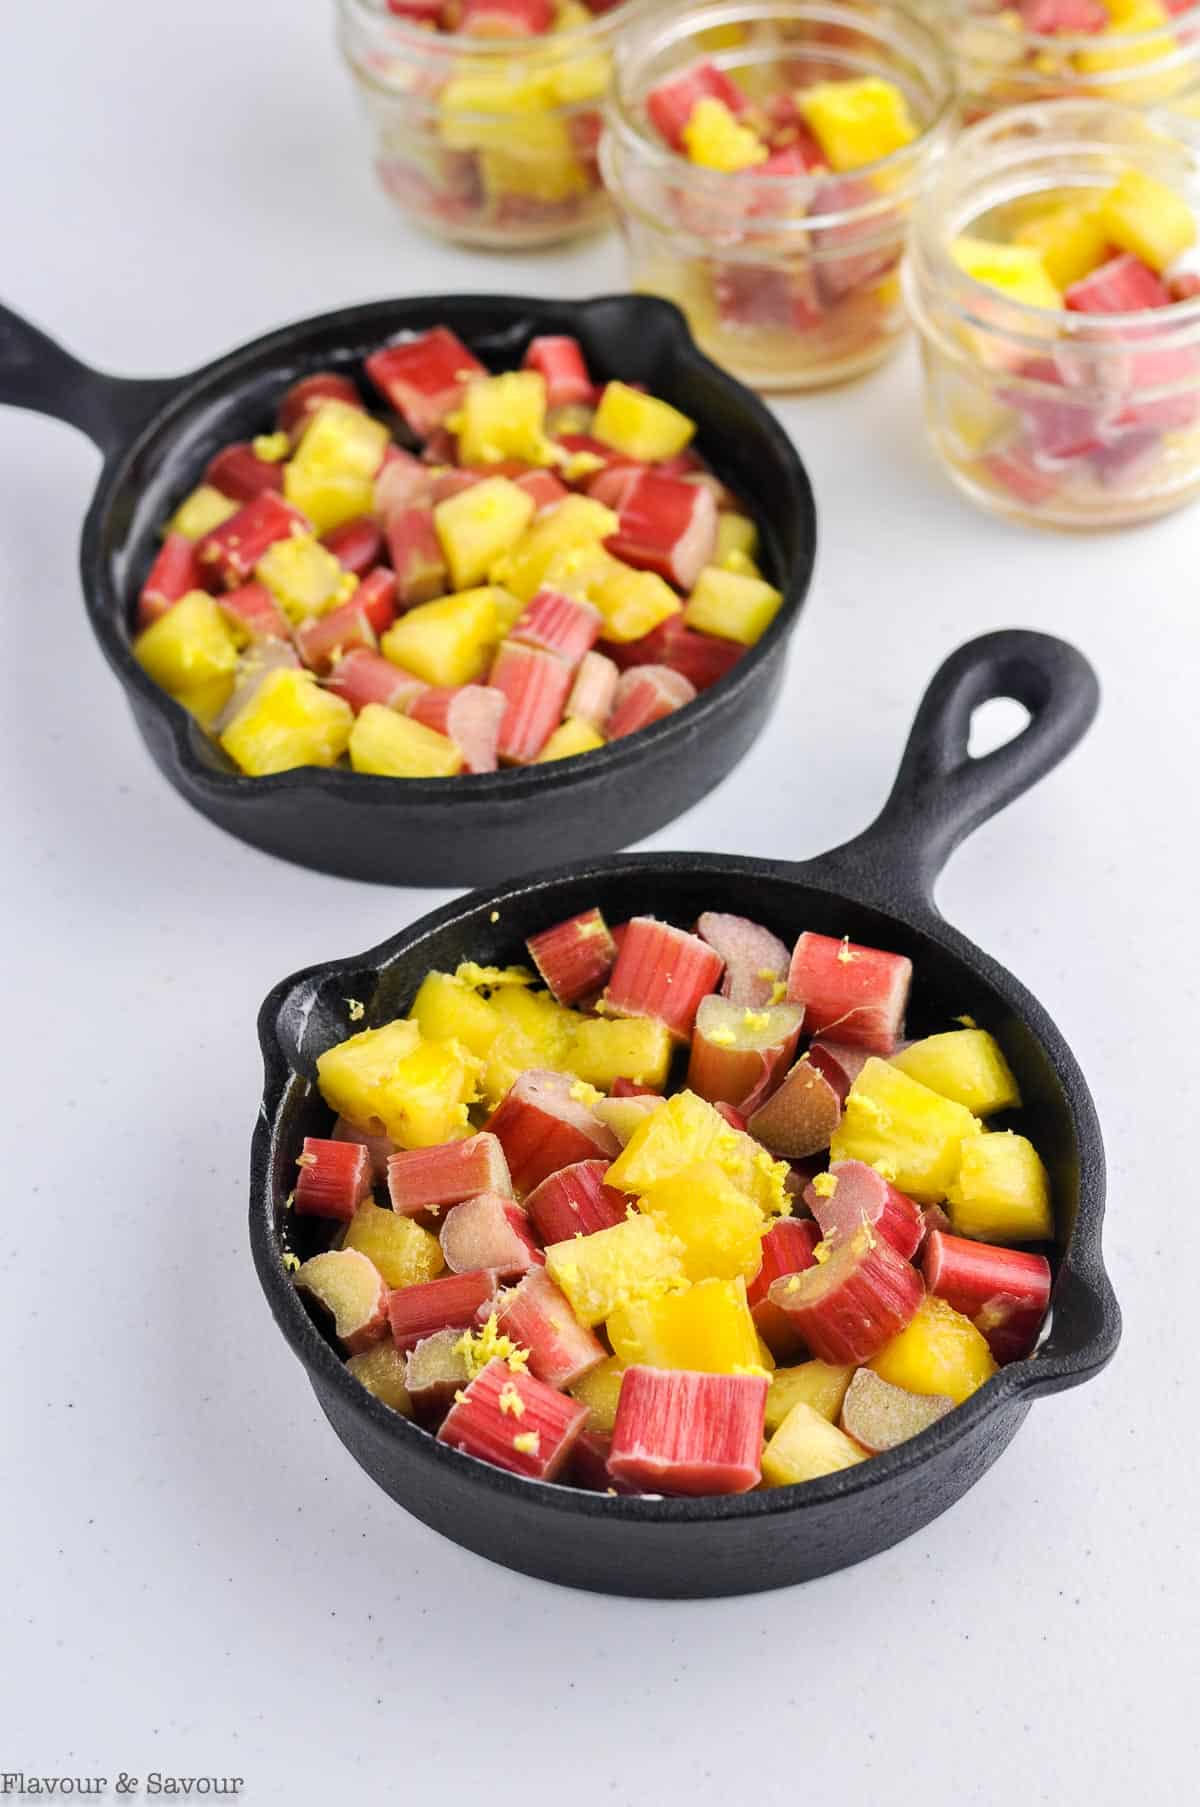 Pineapple Rhubarb mixture in mini skillets